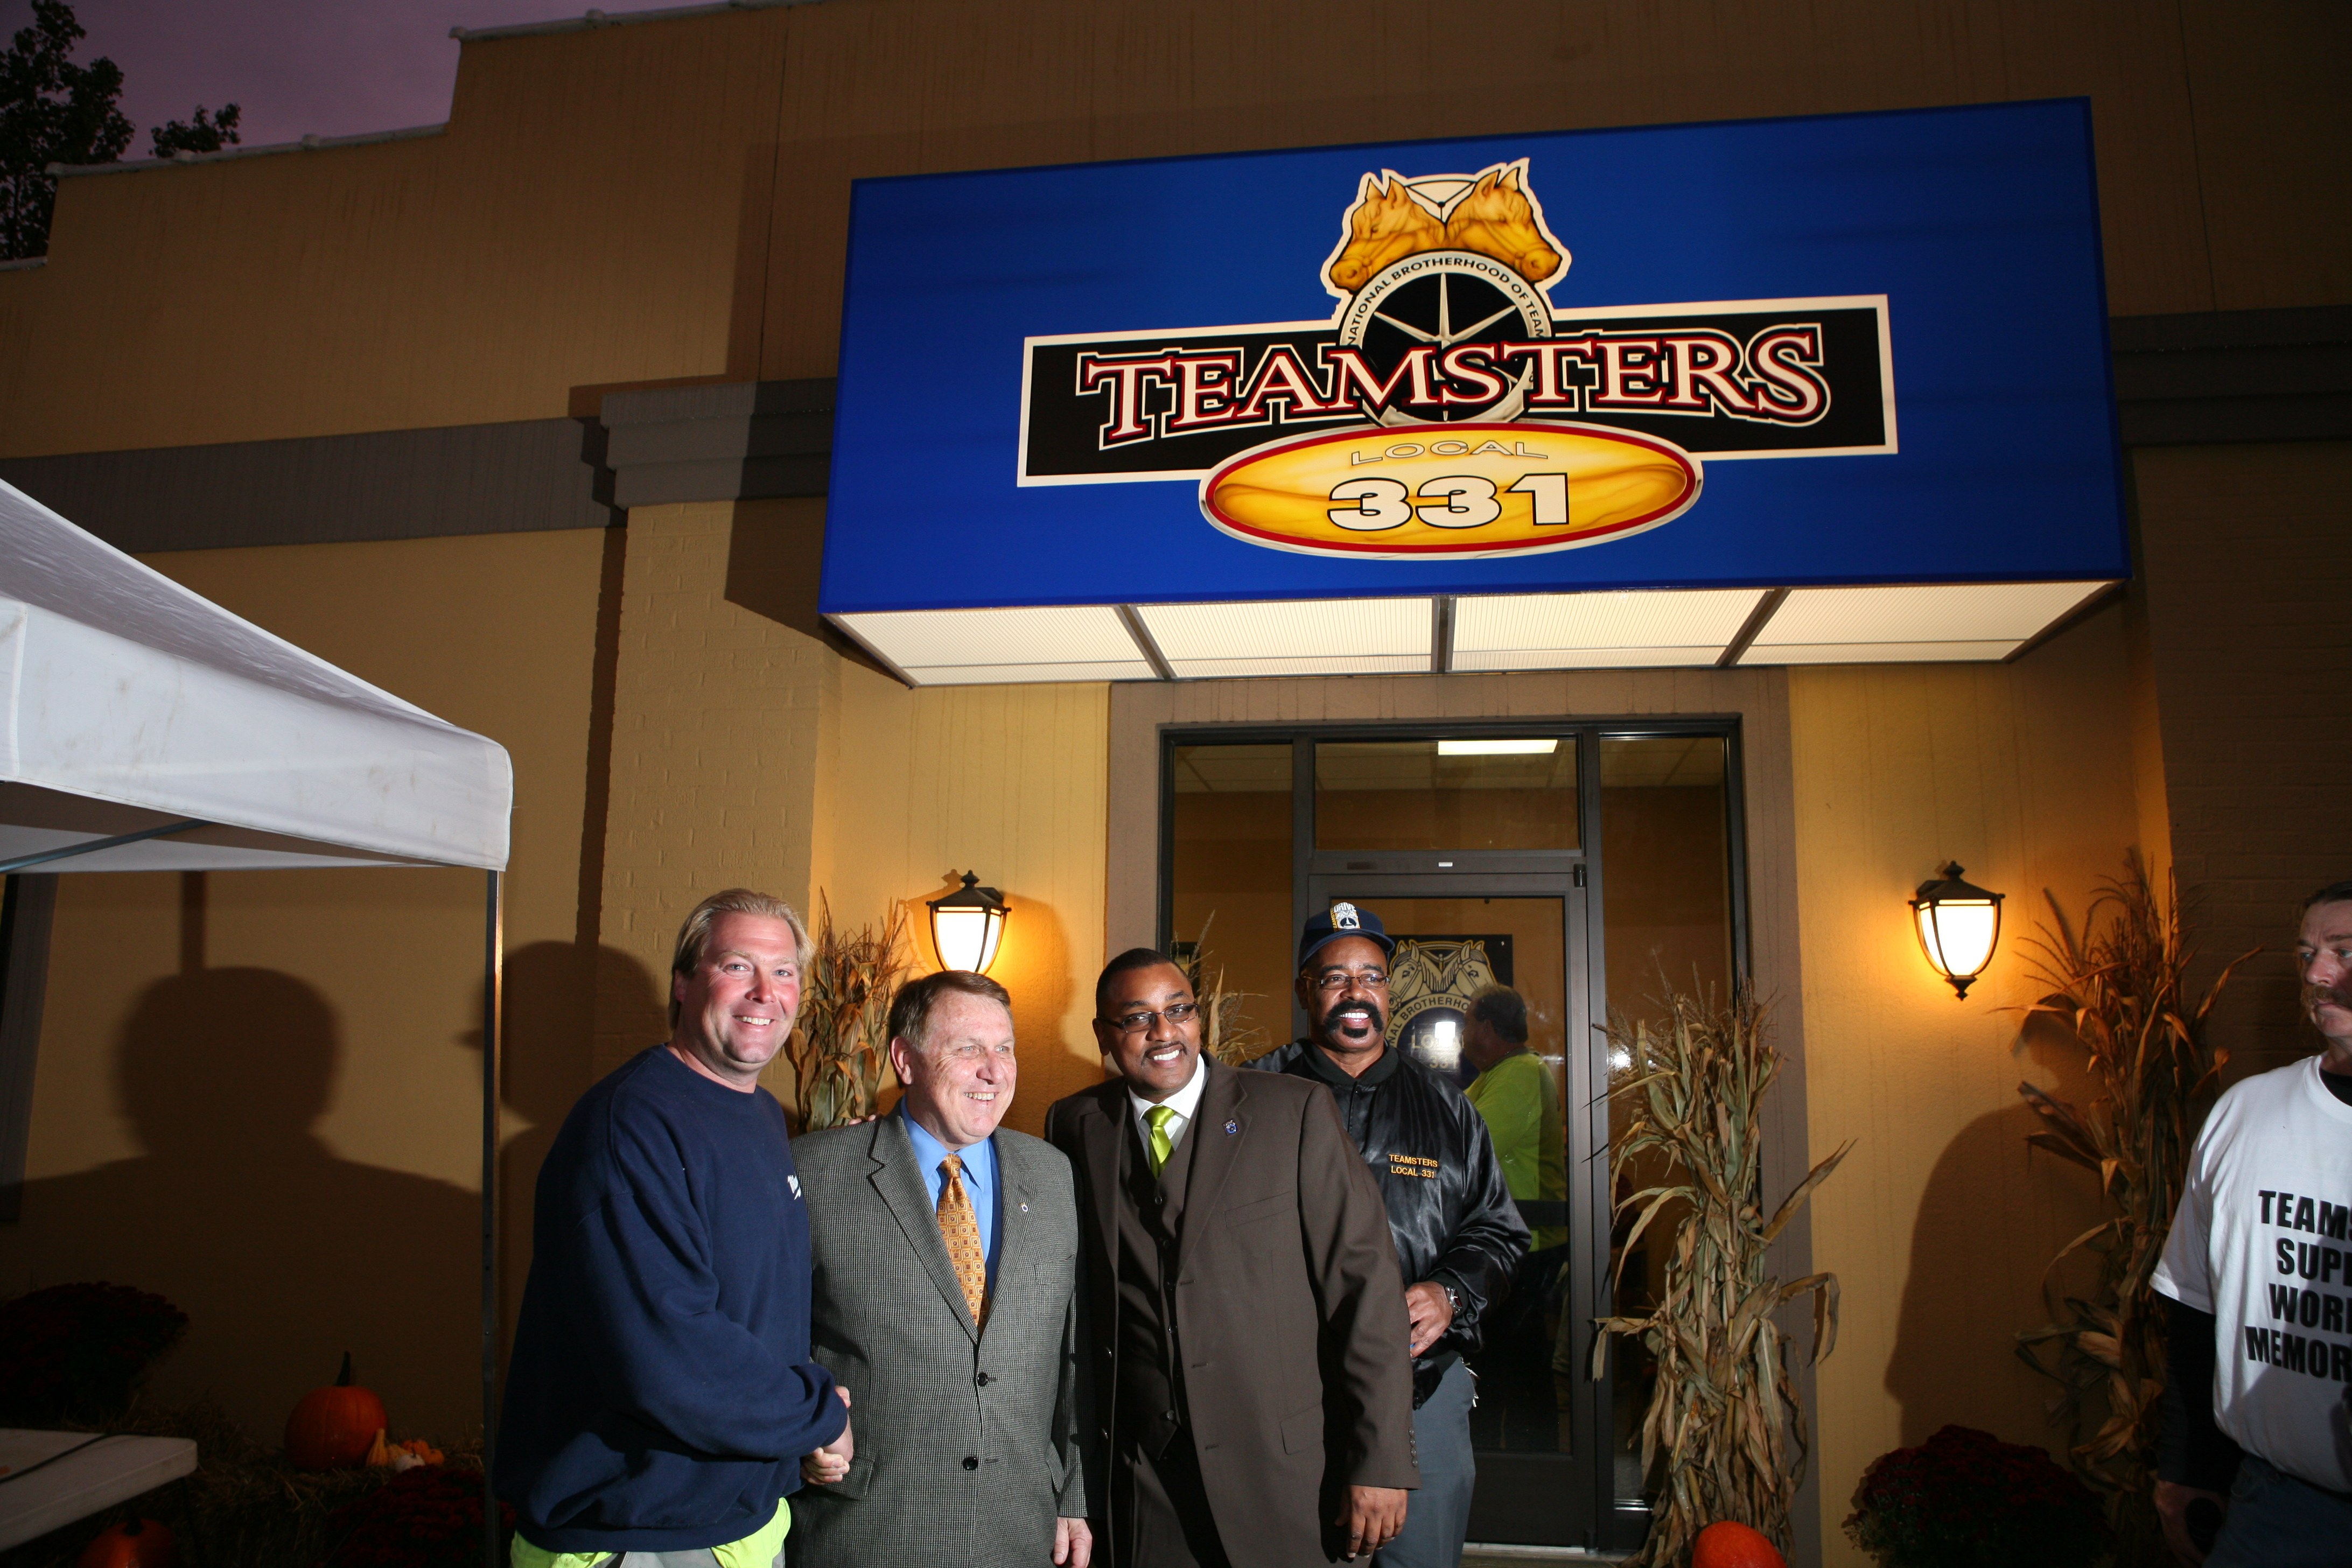 OUR HISTORY – Teamsters Local 331